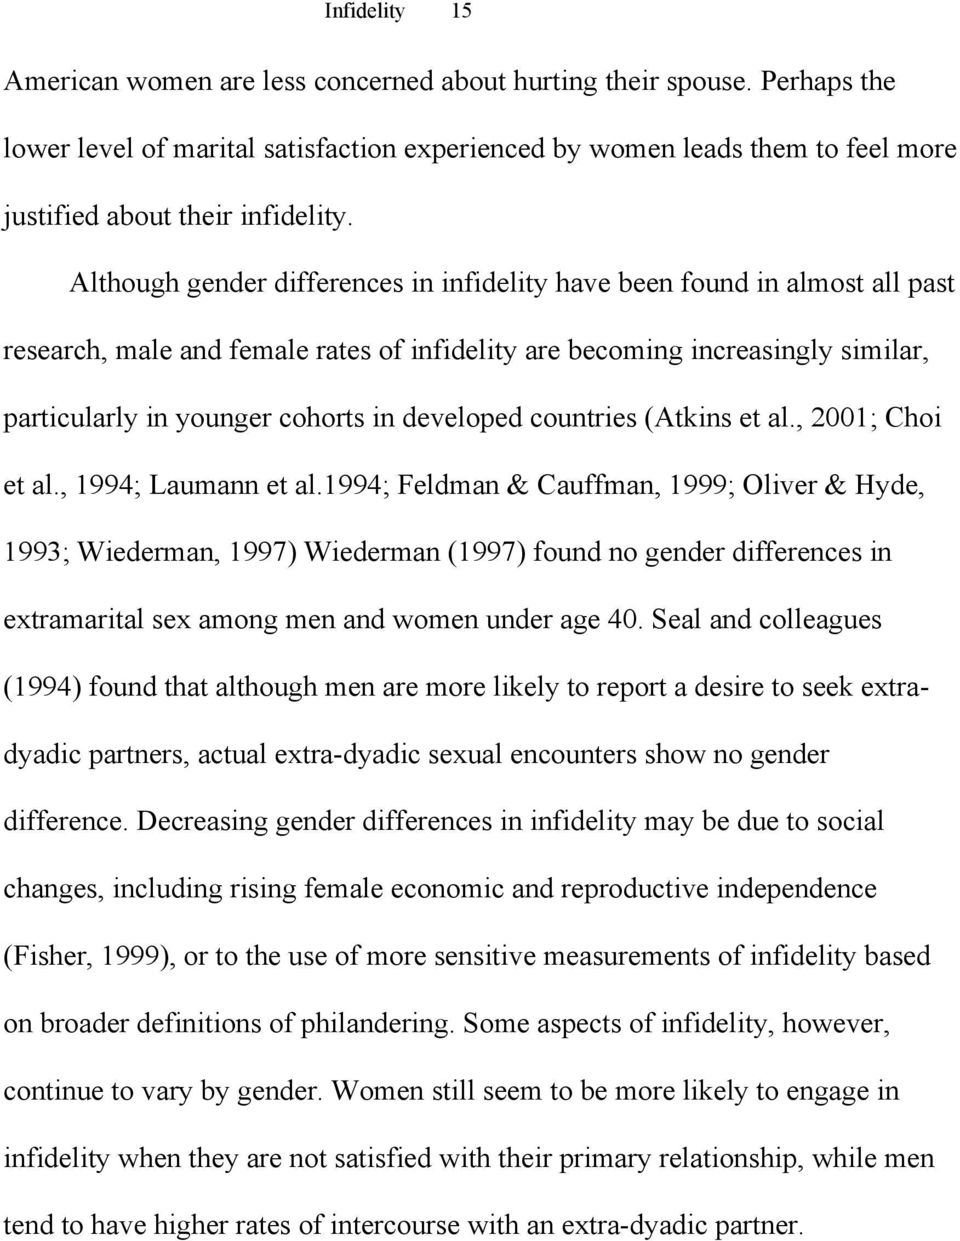 Although gender differences in infidelity have been found in almost all past research, male and female rates of infidelity are becoming increasingly similar, particularly in younger cohorts in